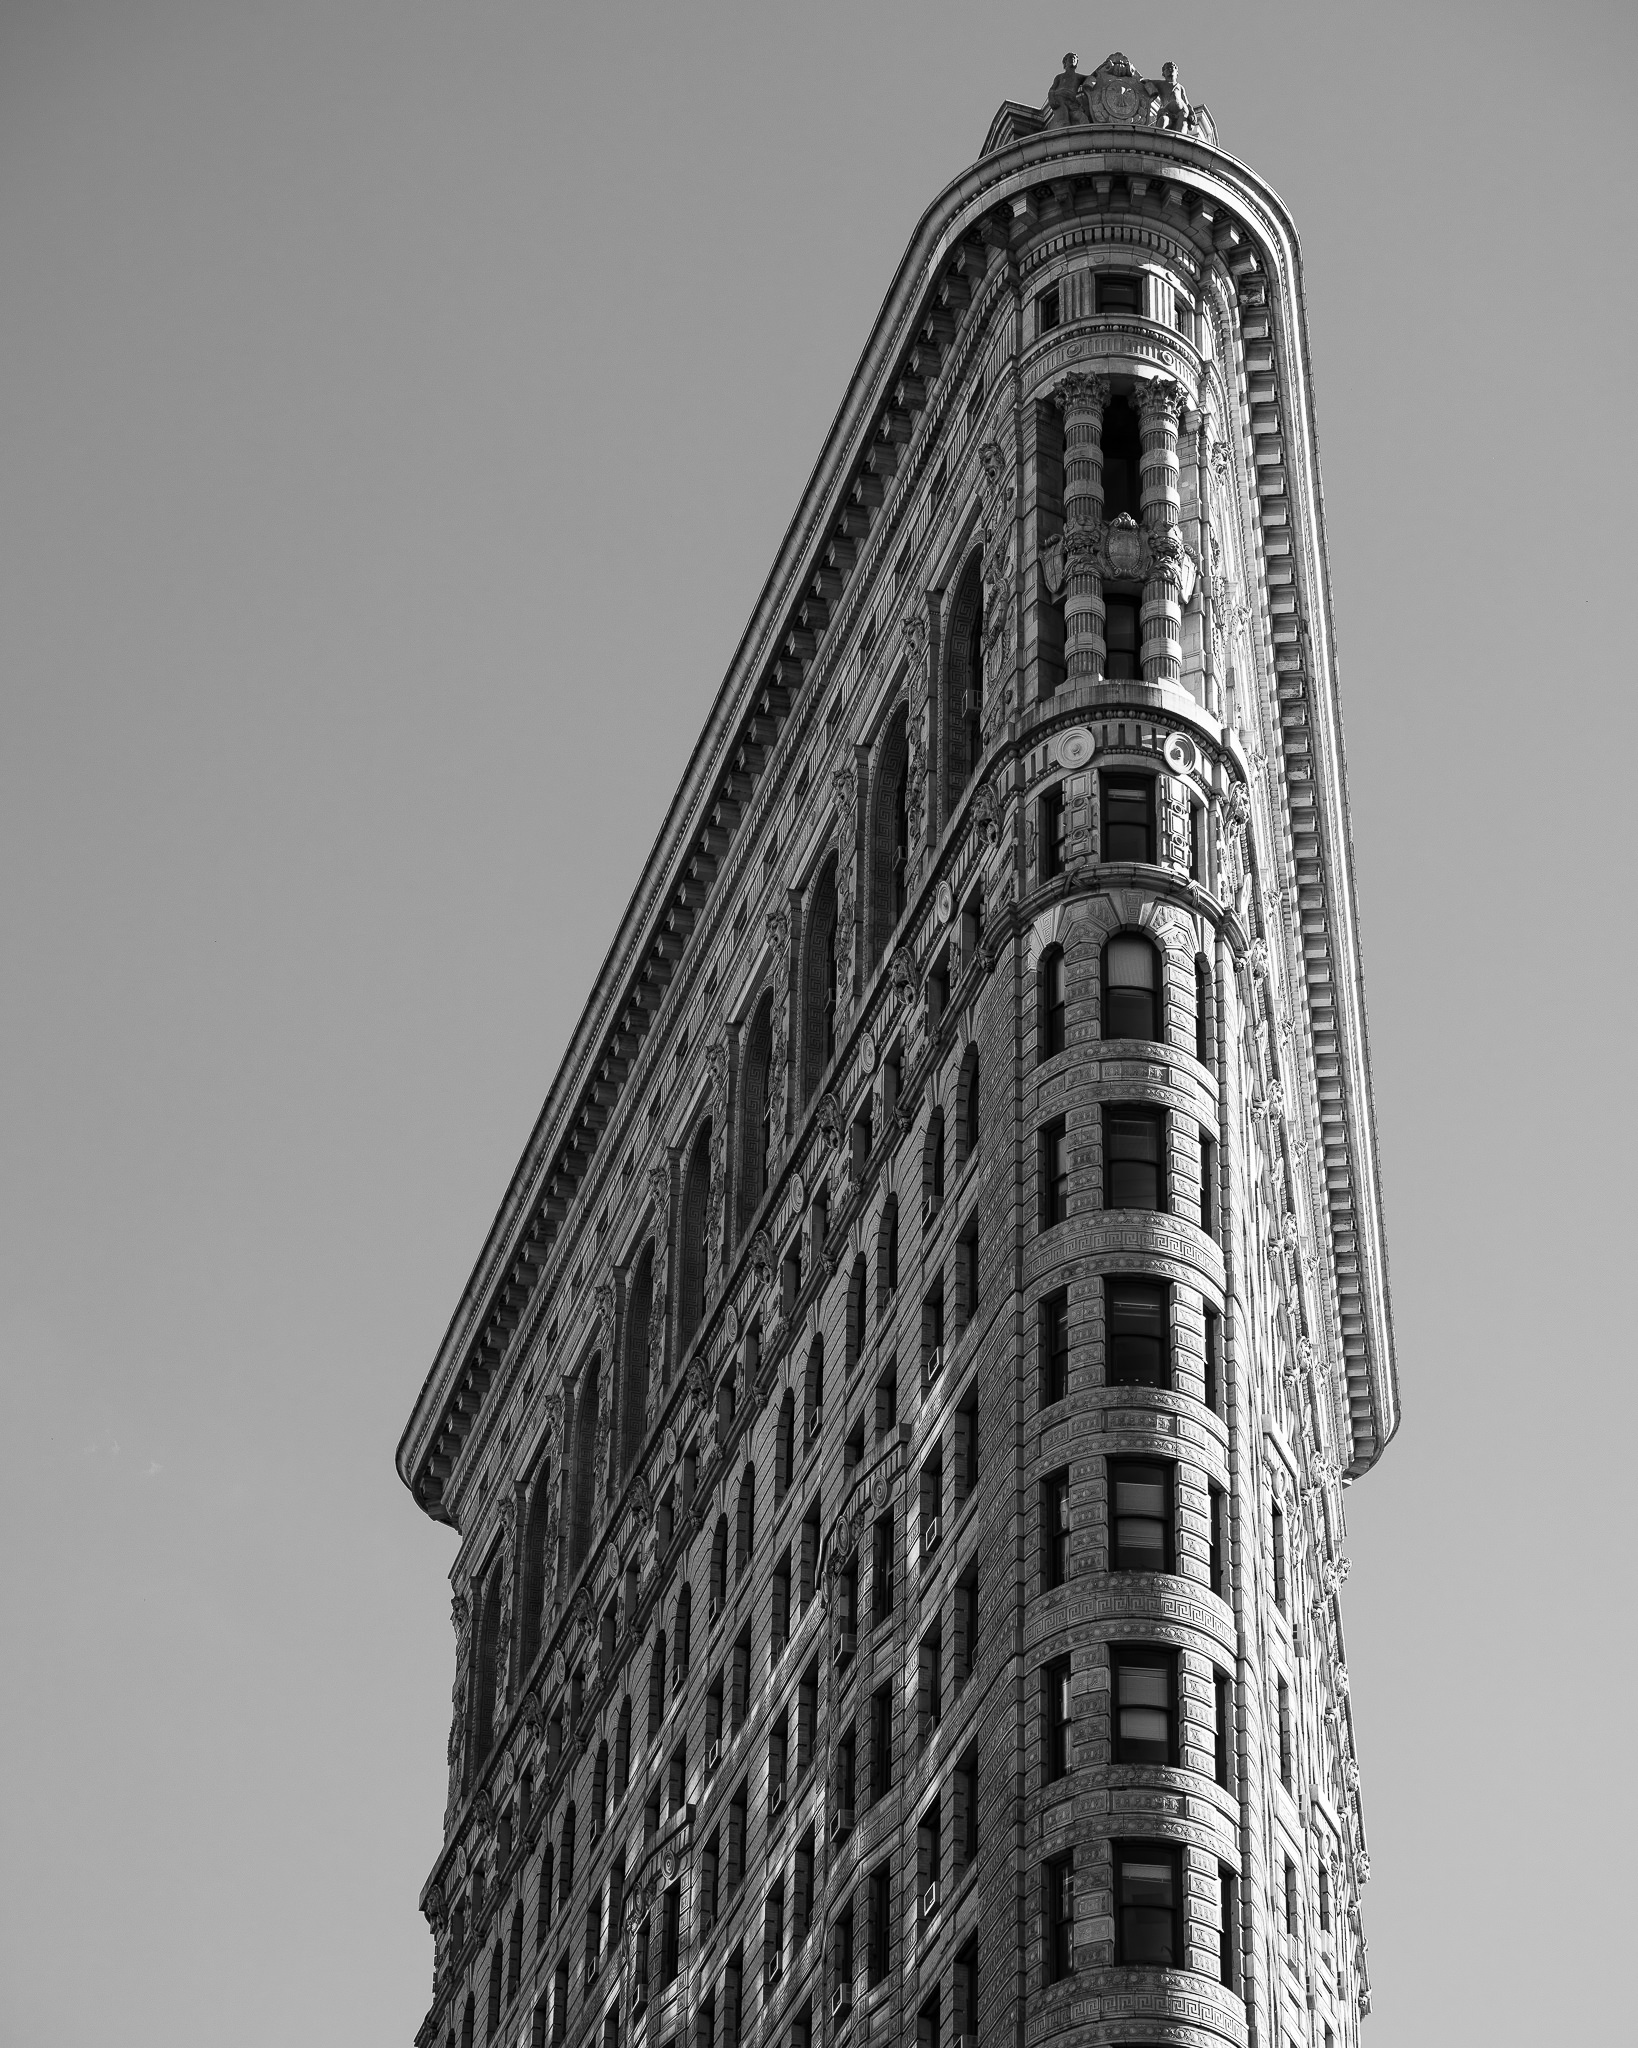 a black and white photograph of the flatiron building in new york city